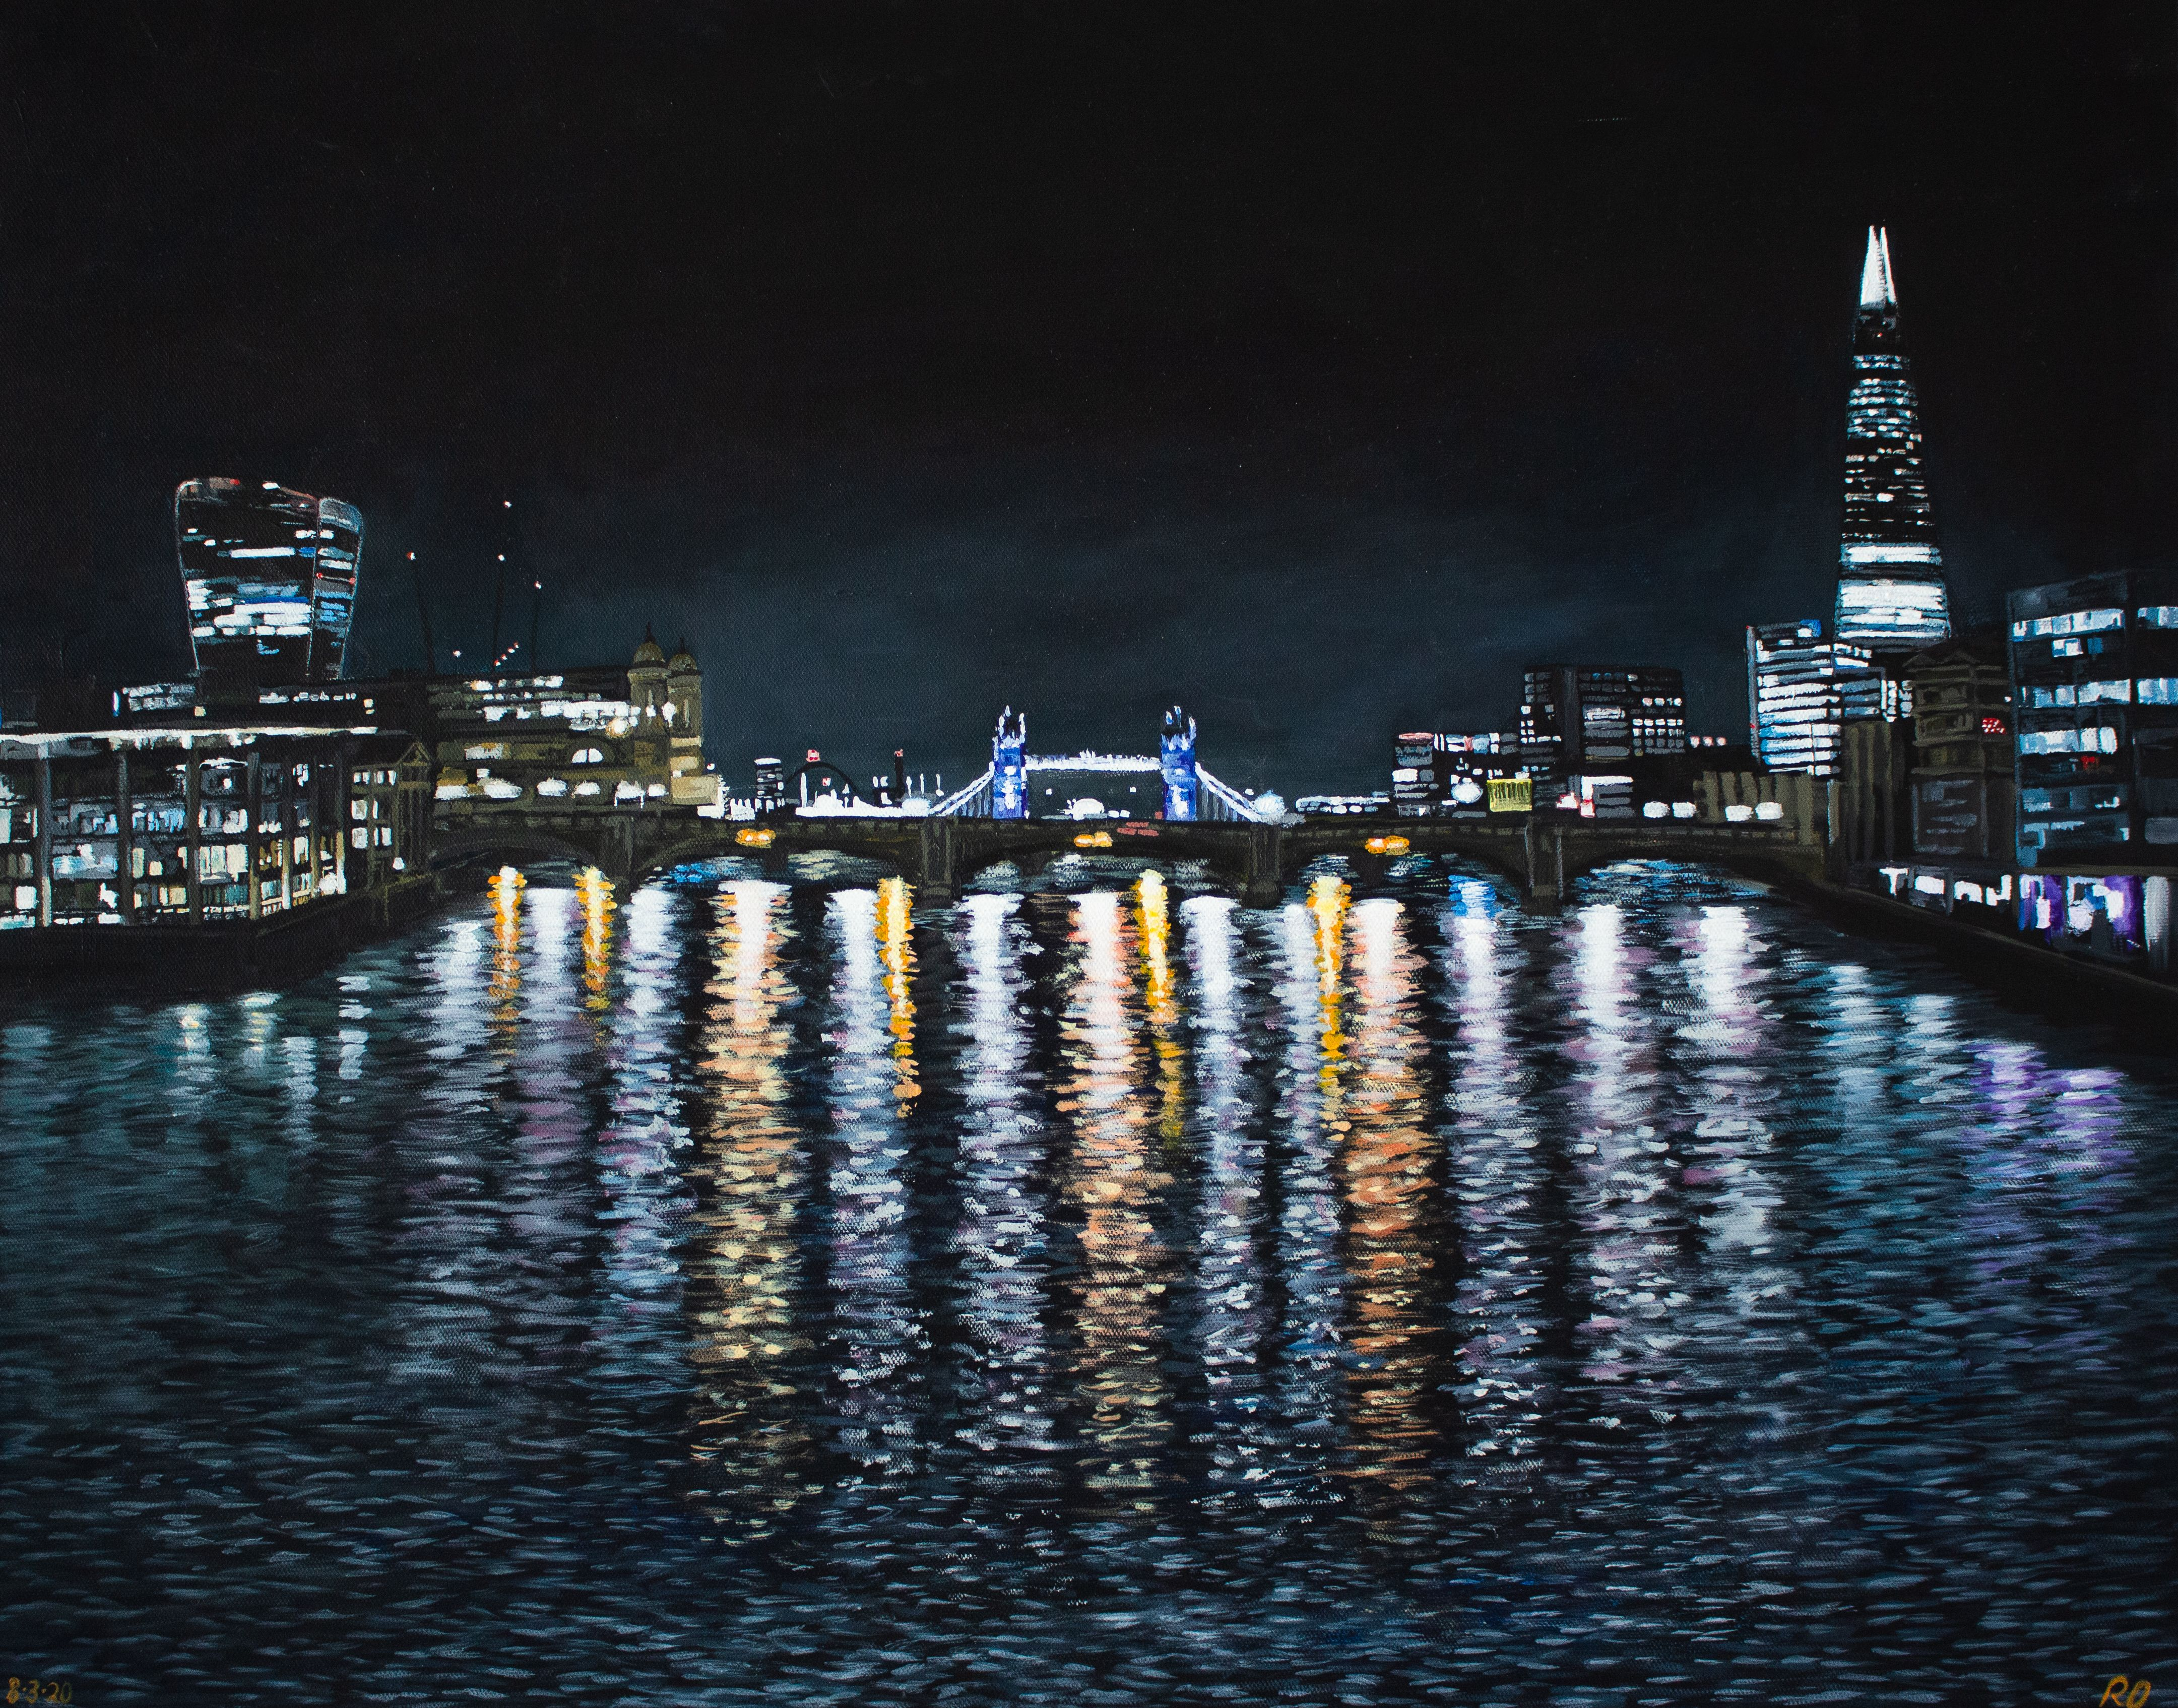 London On The Thames River Night Reflections In The Etsy Night Reflection River Thames Water Printing Tower bridge night reflections london hd